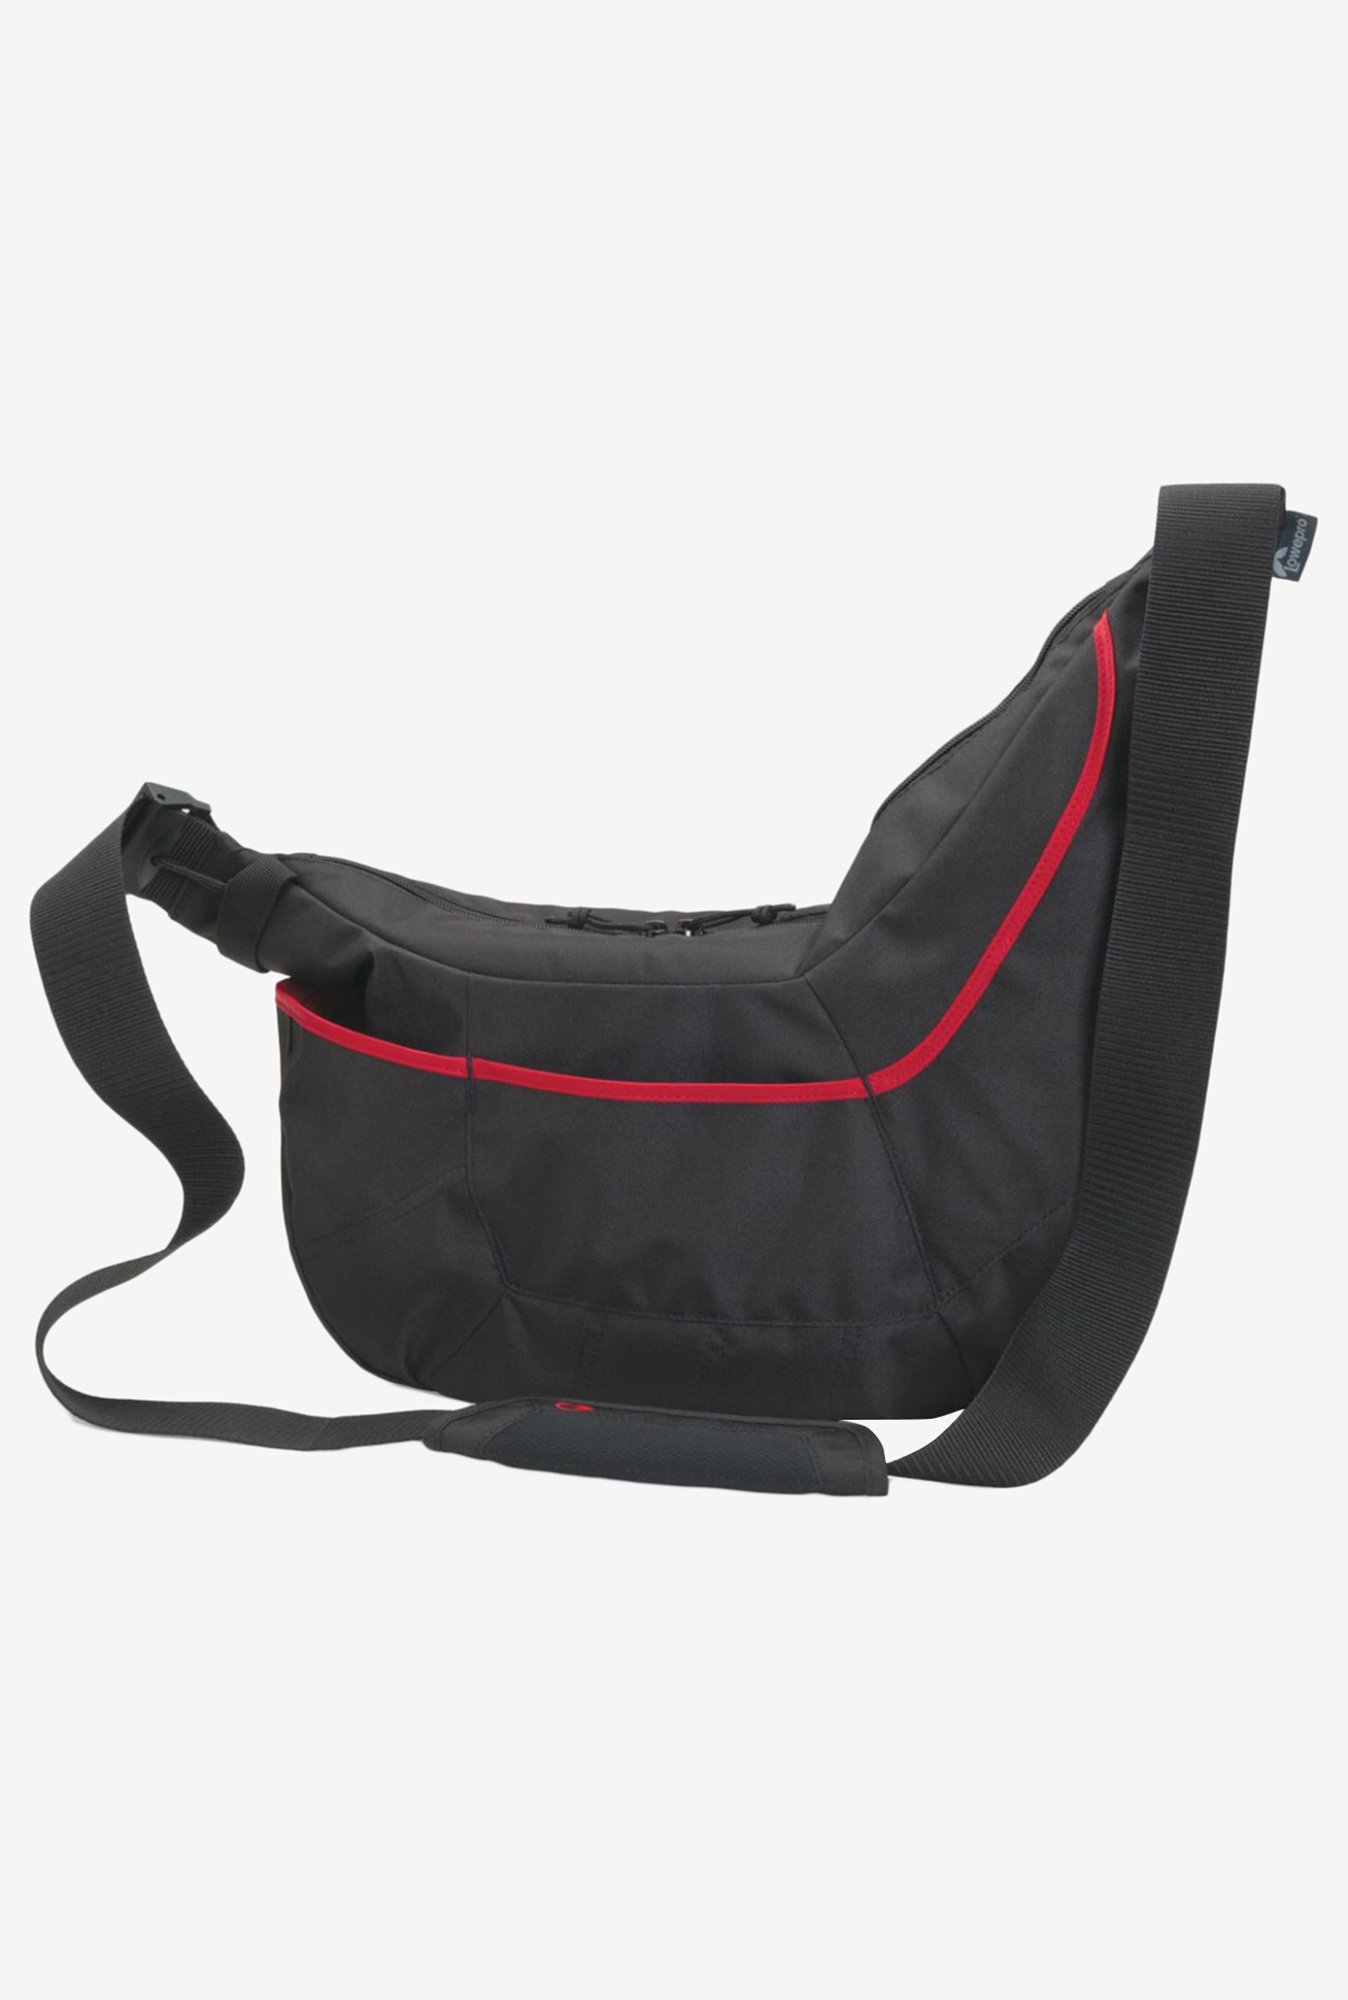 Lowepro Passport Sling II Bag Black